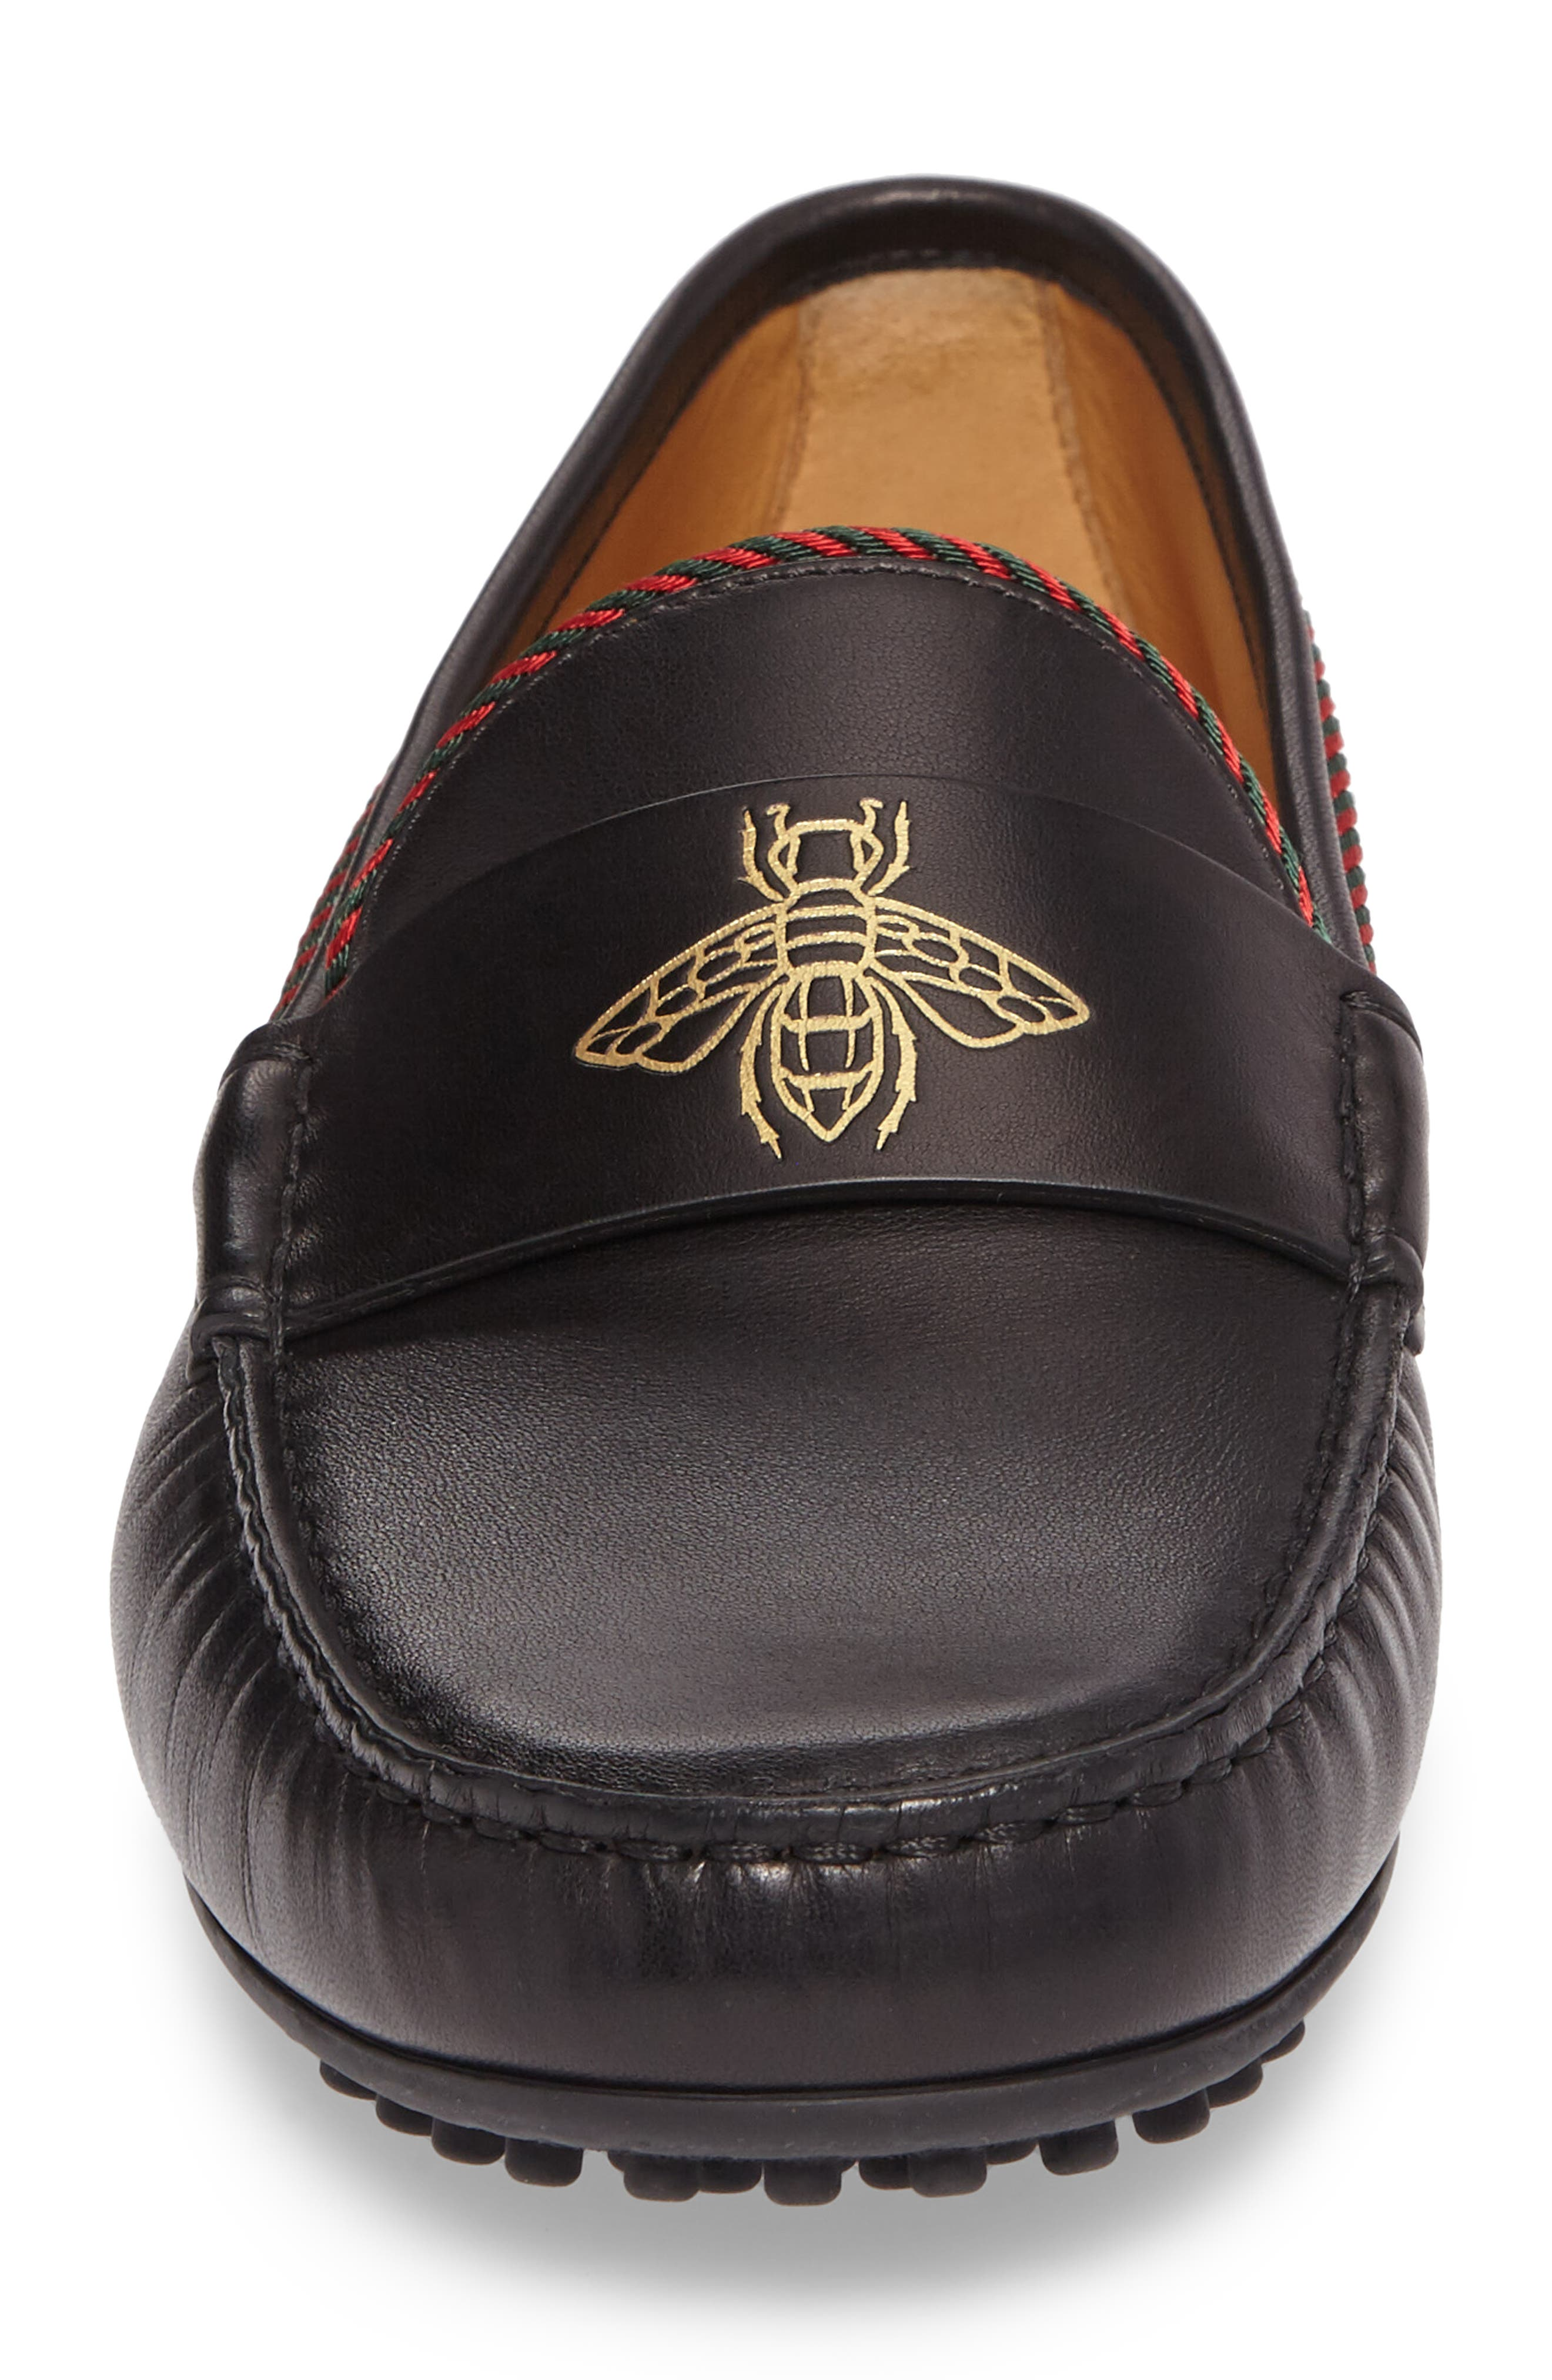 Bee Leather Driving Shoe,                             Alternate thumbnail 4, color,                             007